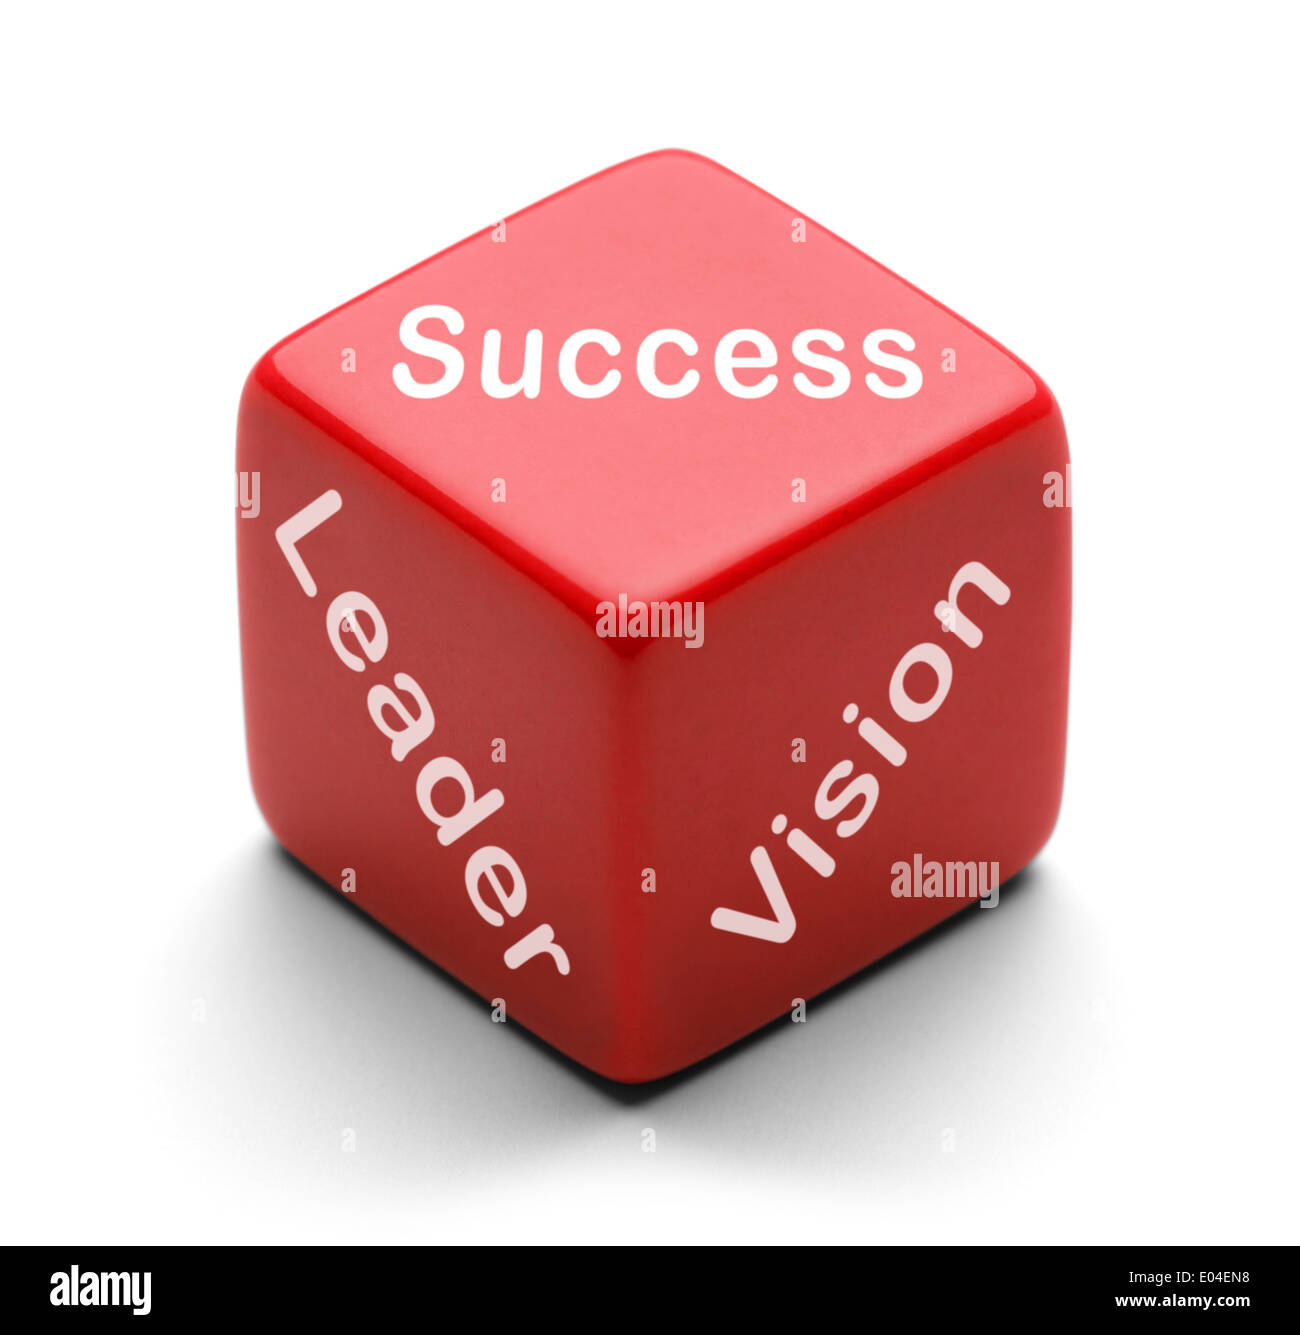 Red Dice wtih Success Leader and Vision on it Isolated on White Background. - Stock Image